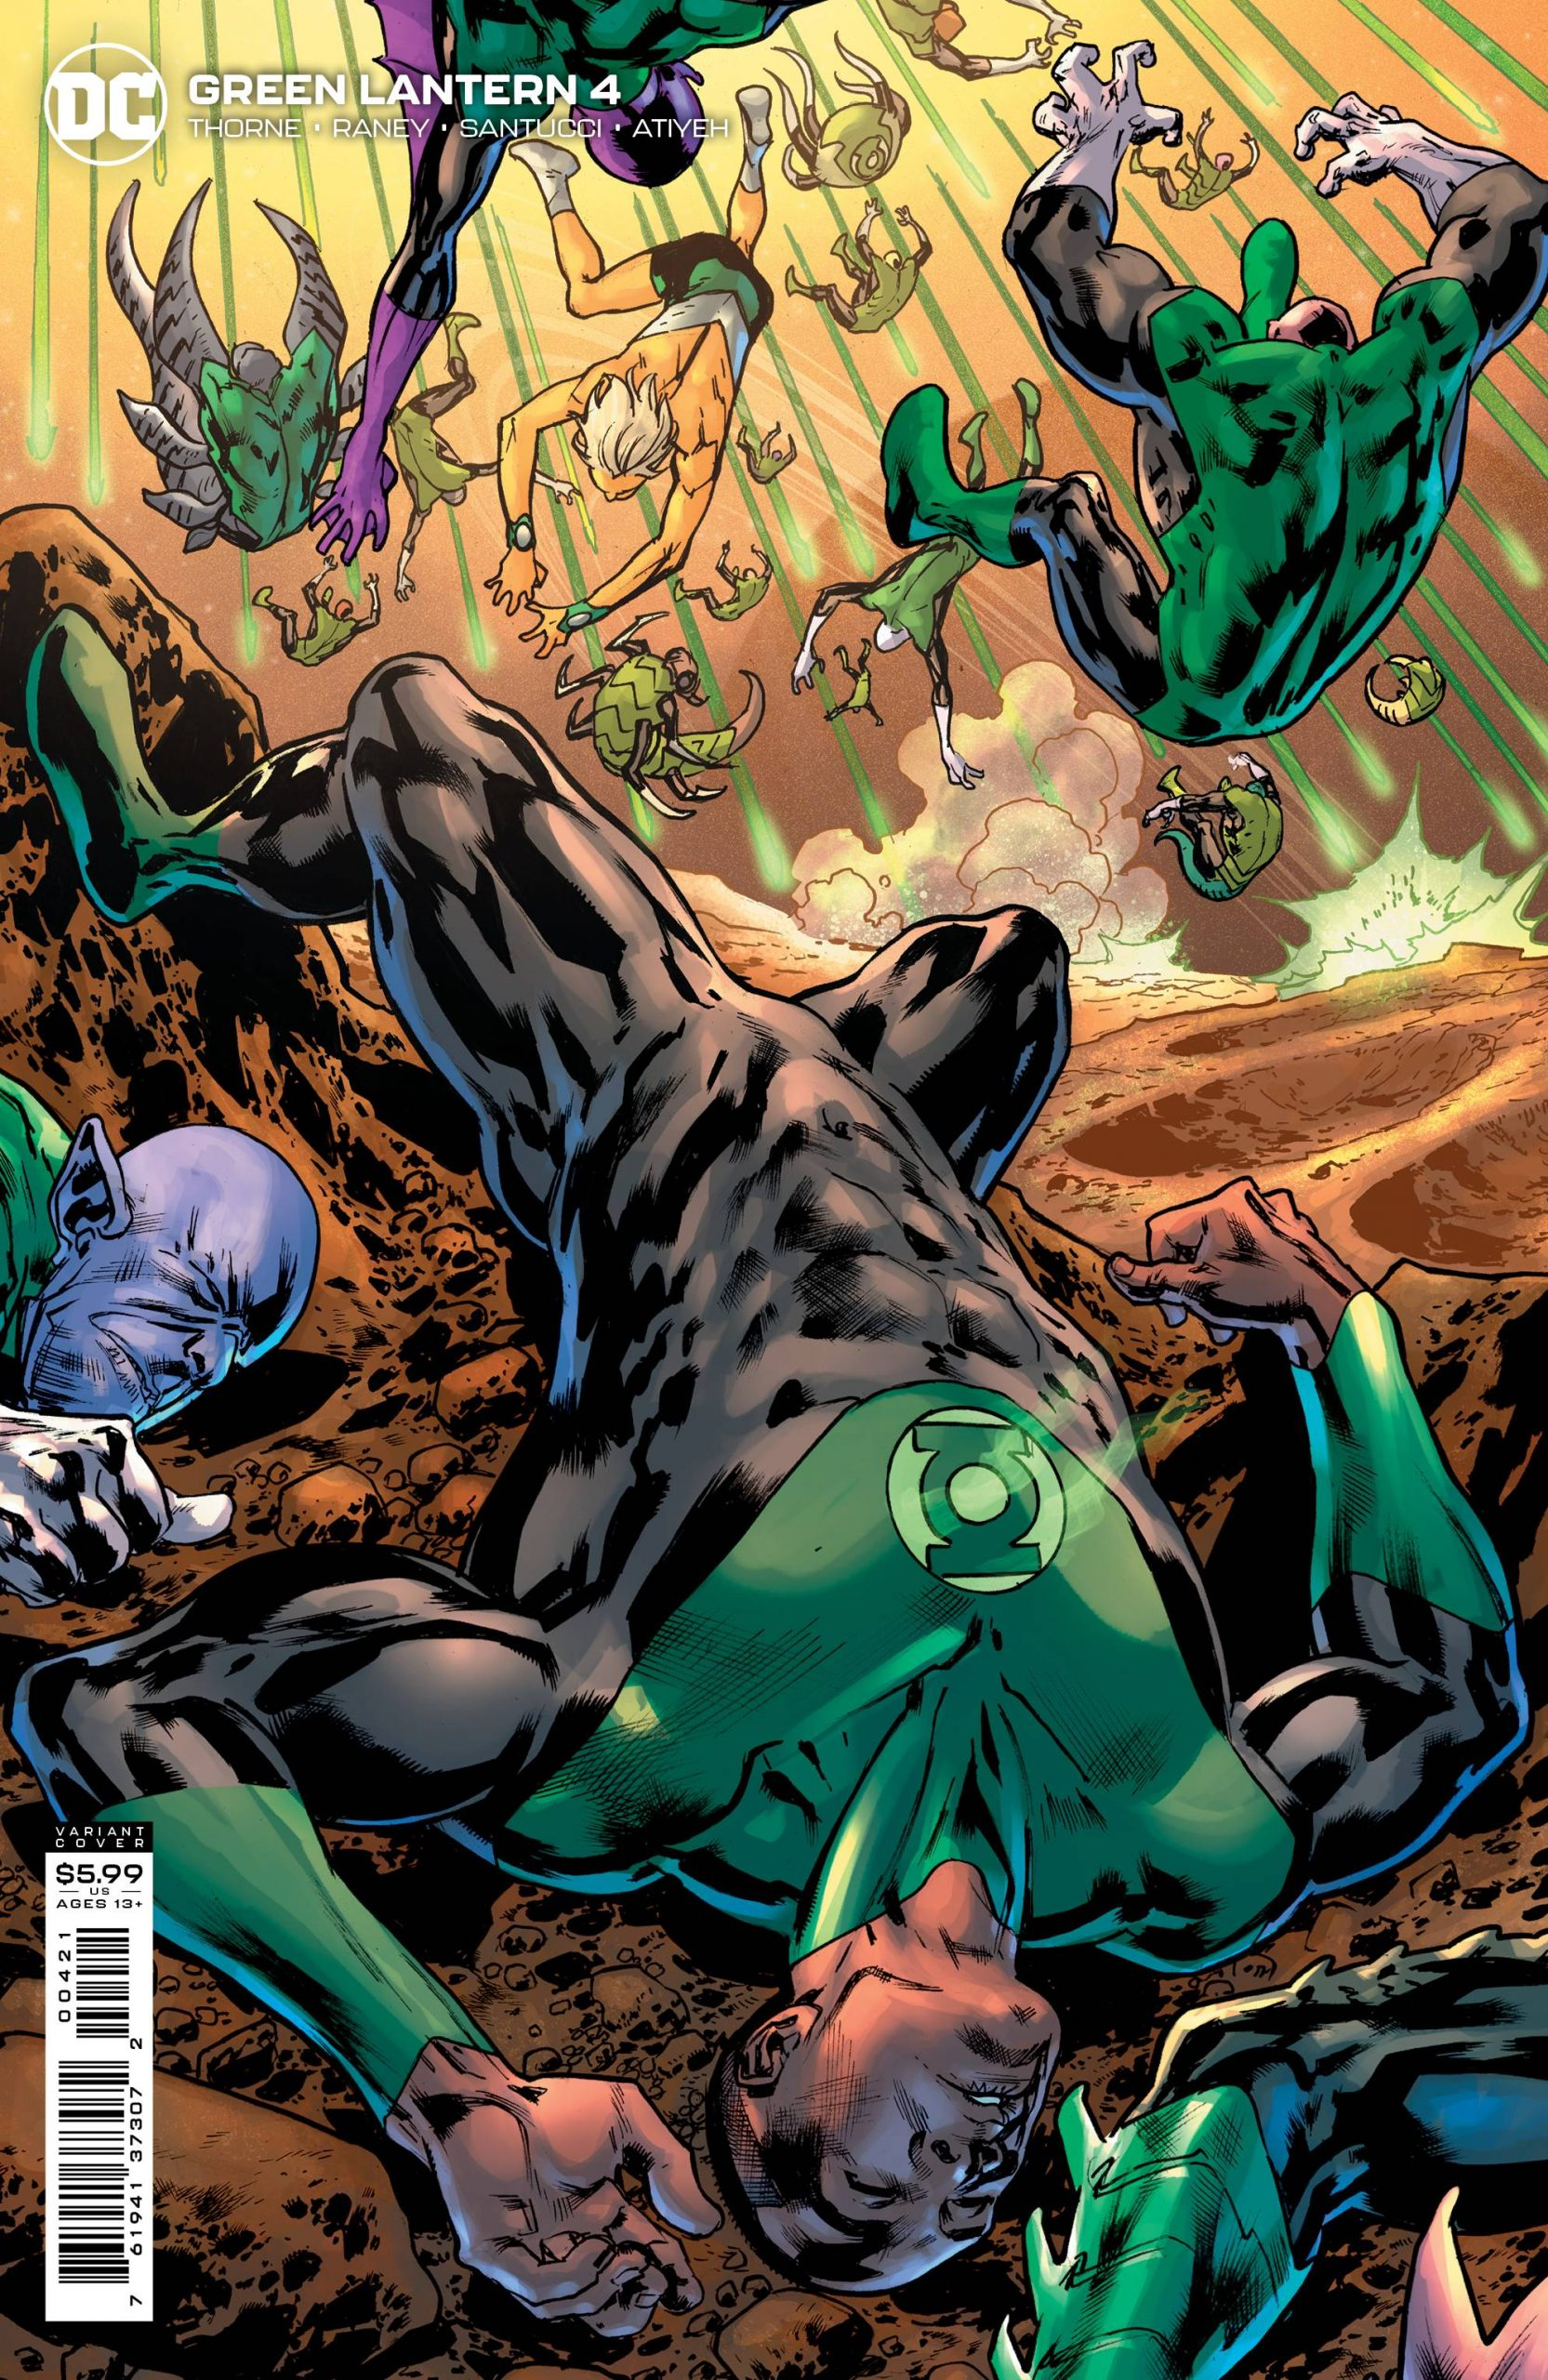 Green-Lantern-4-spoilers-0-2-scaled-1 Green-Lantern-4-spoilers-0-2-scaled-1